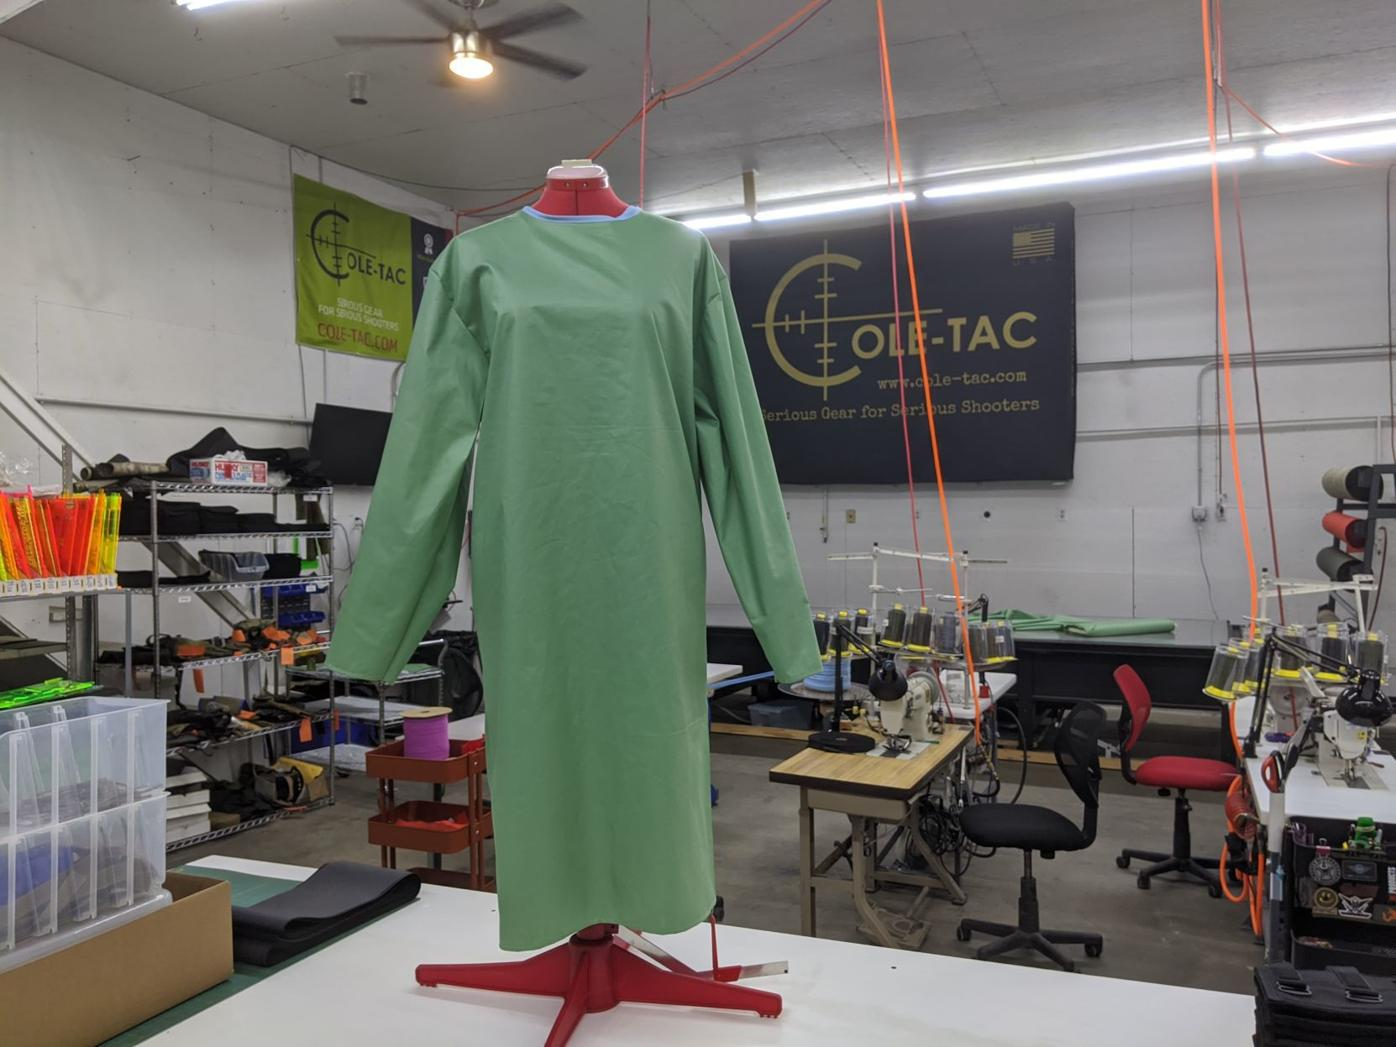 Cole-Tac gown